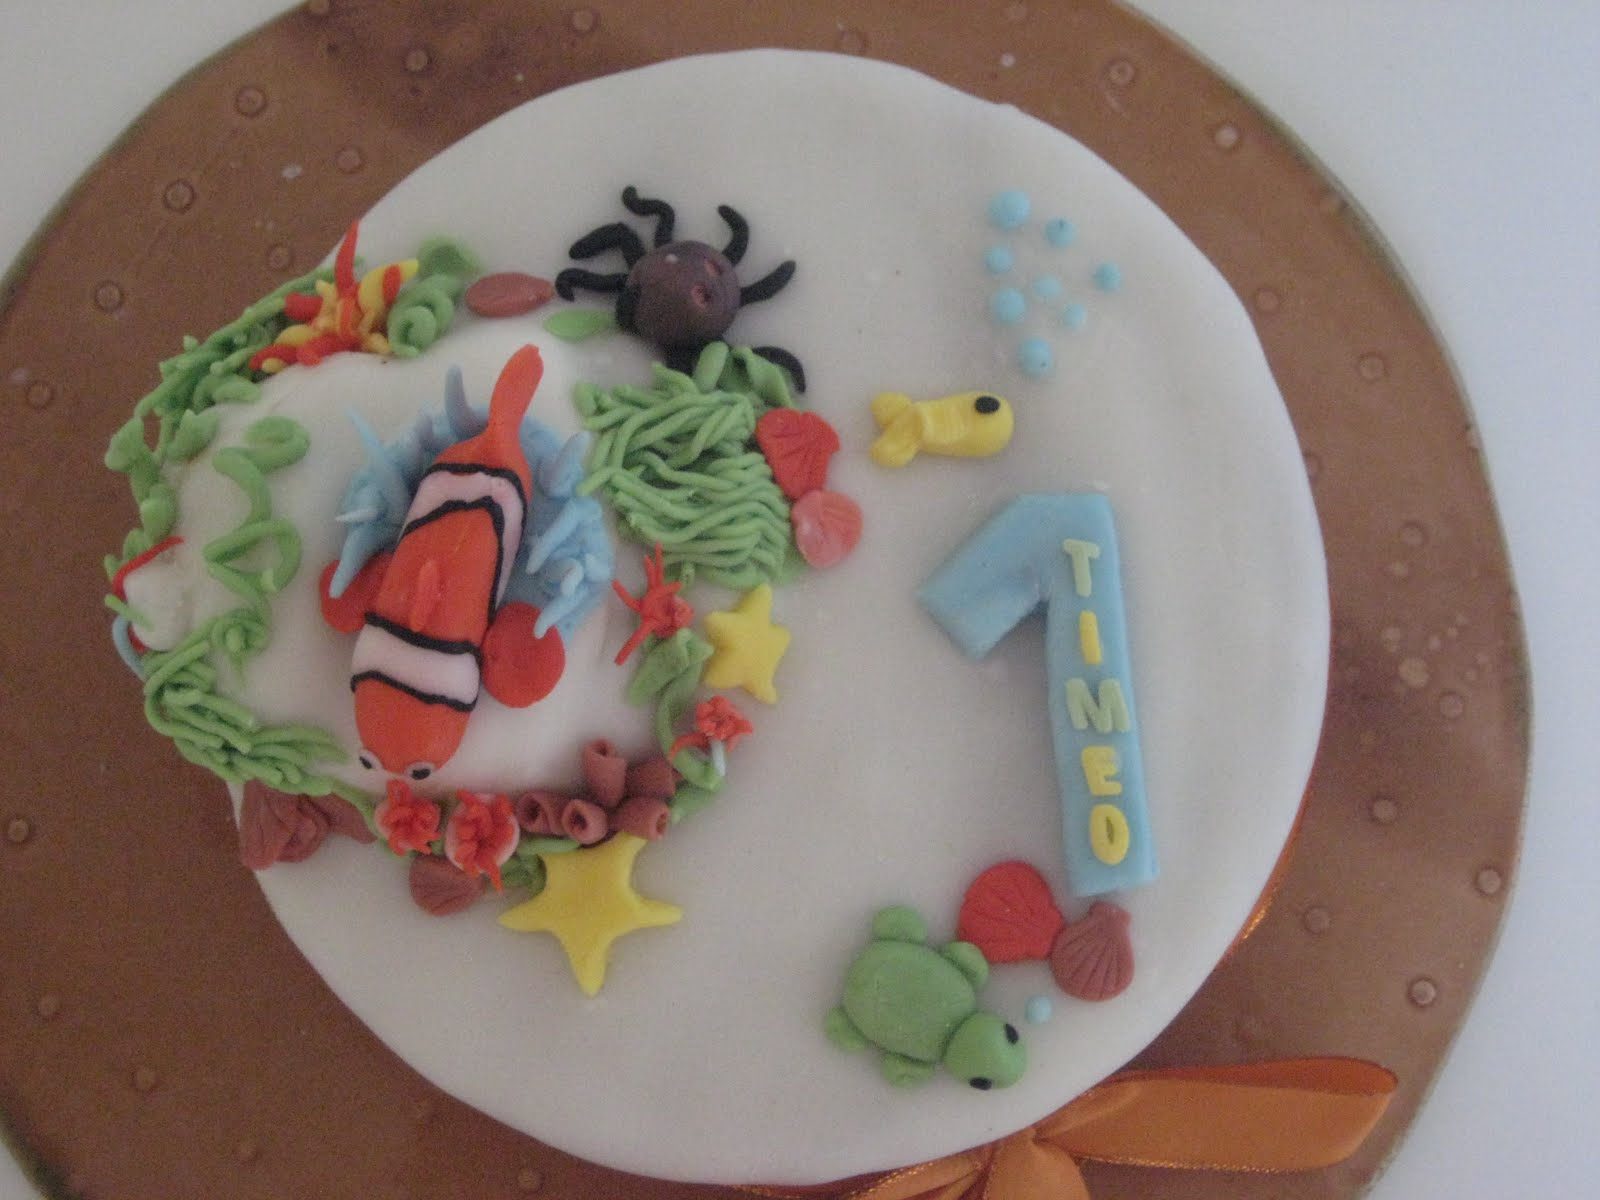 Heavenly Sugary Birthday Cake 1 Year Old Baby Boy